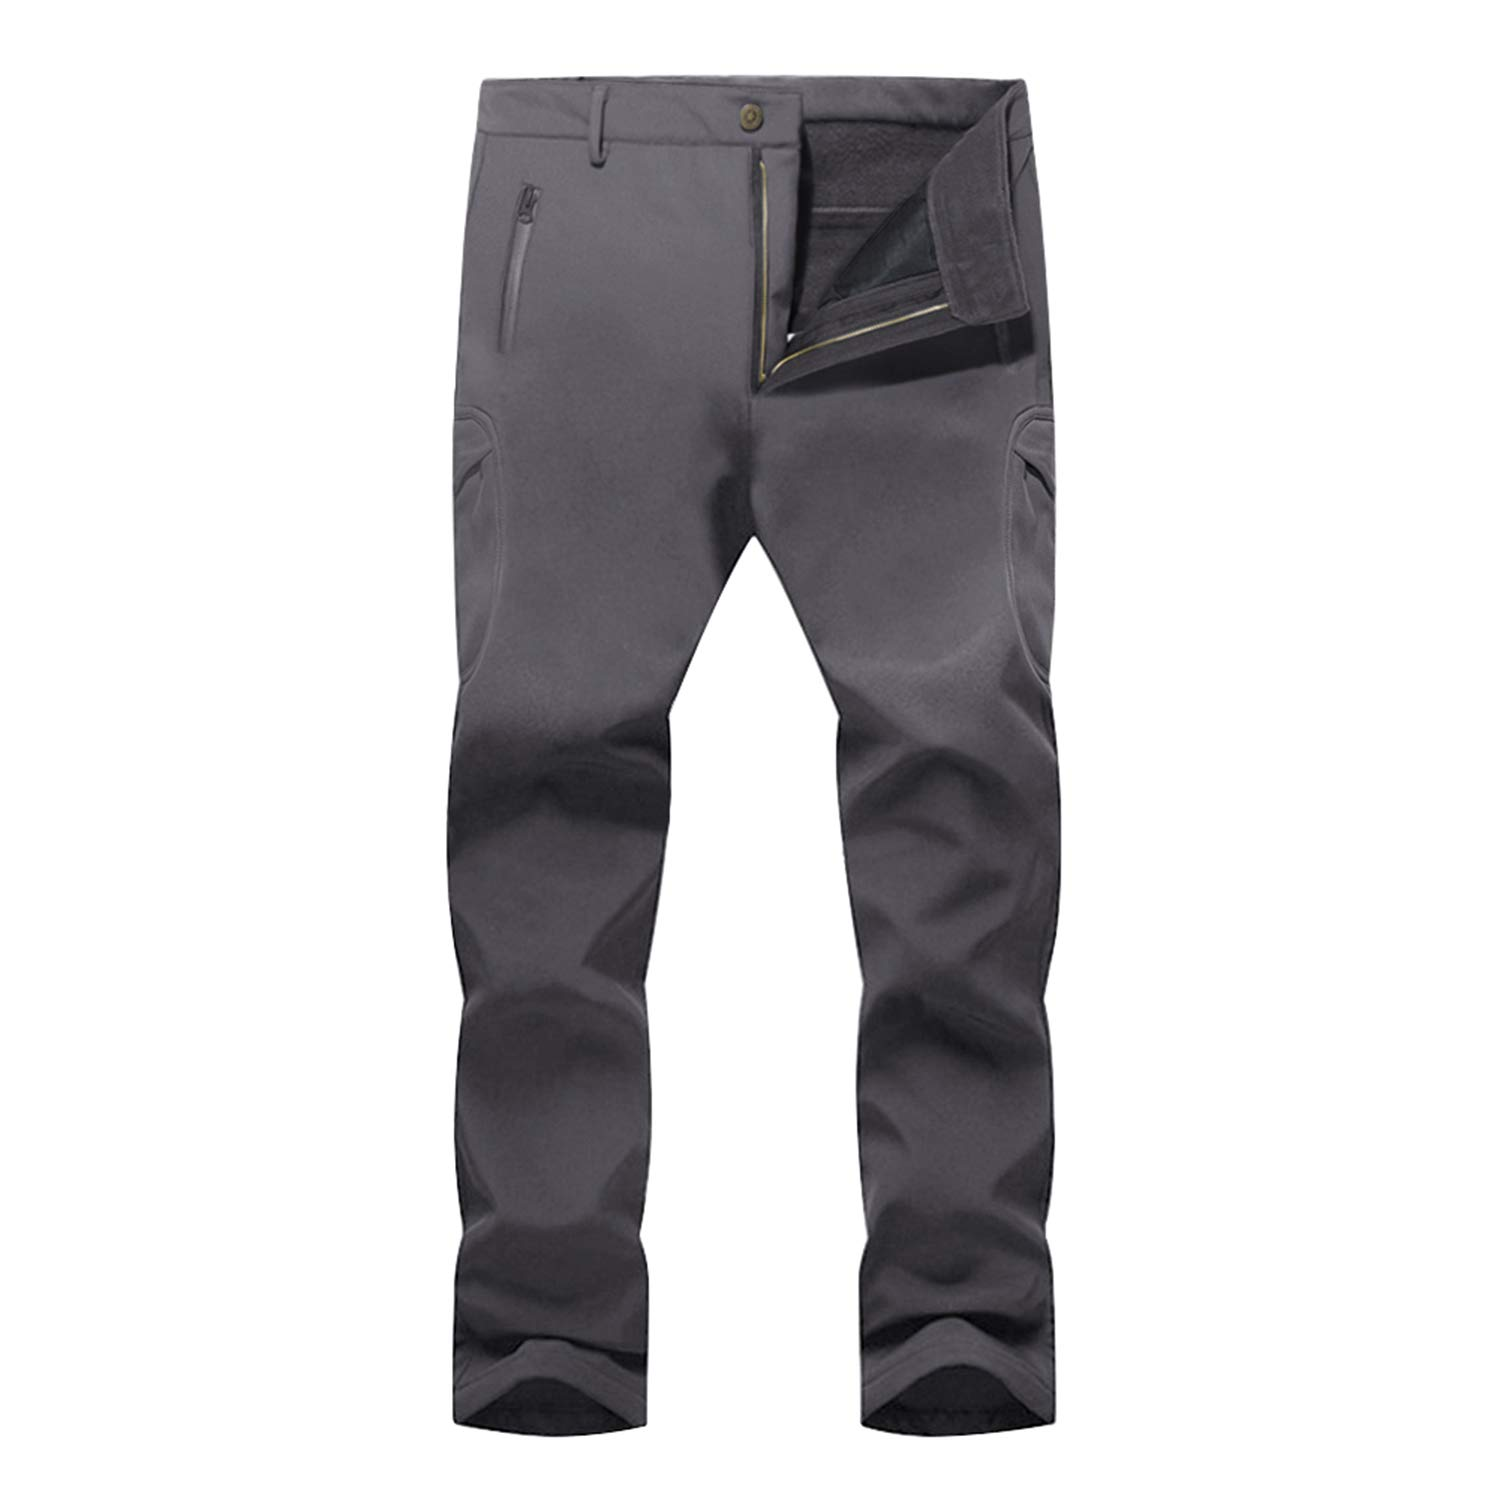 LASIUMIAT Mens Outdoor Windproof Hiking Pants Mountain Waterproof Ski Pants Soft Shell Fleece Lined